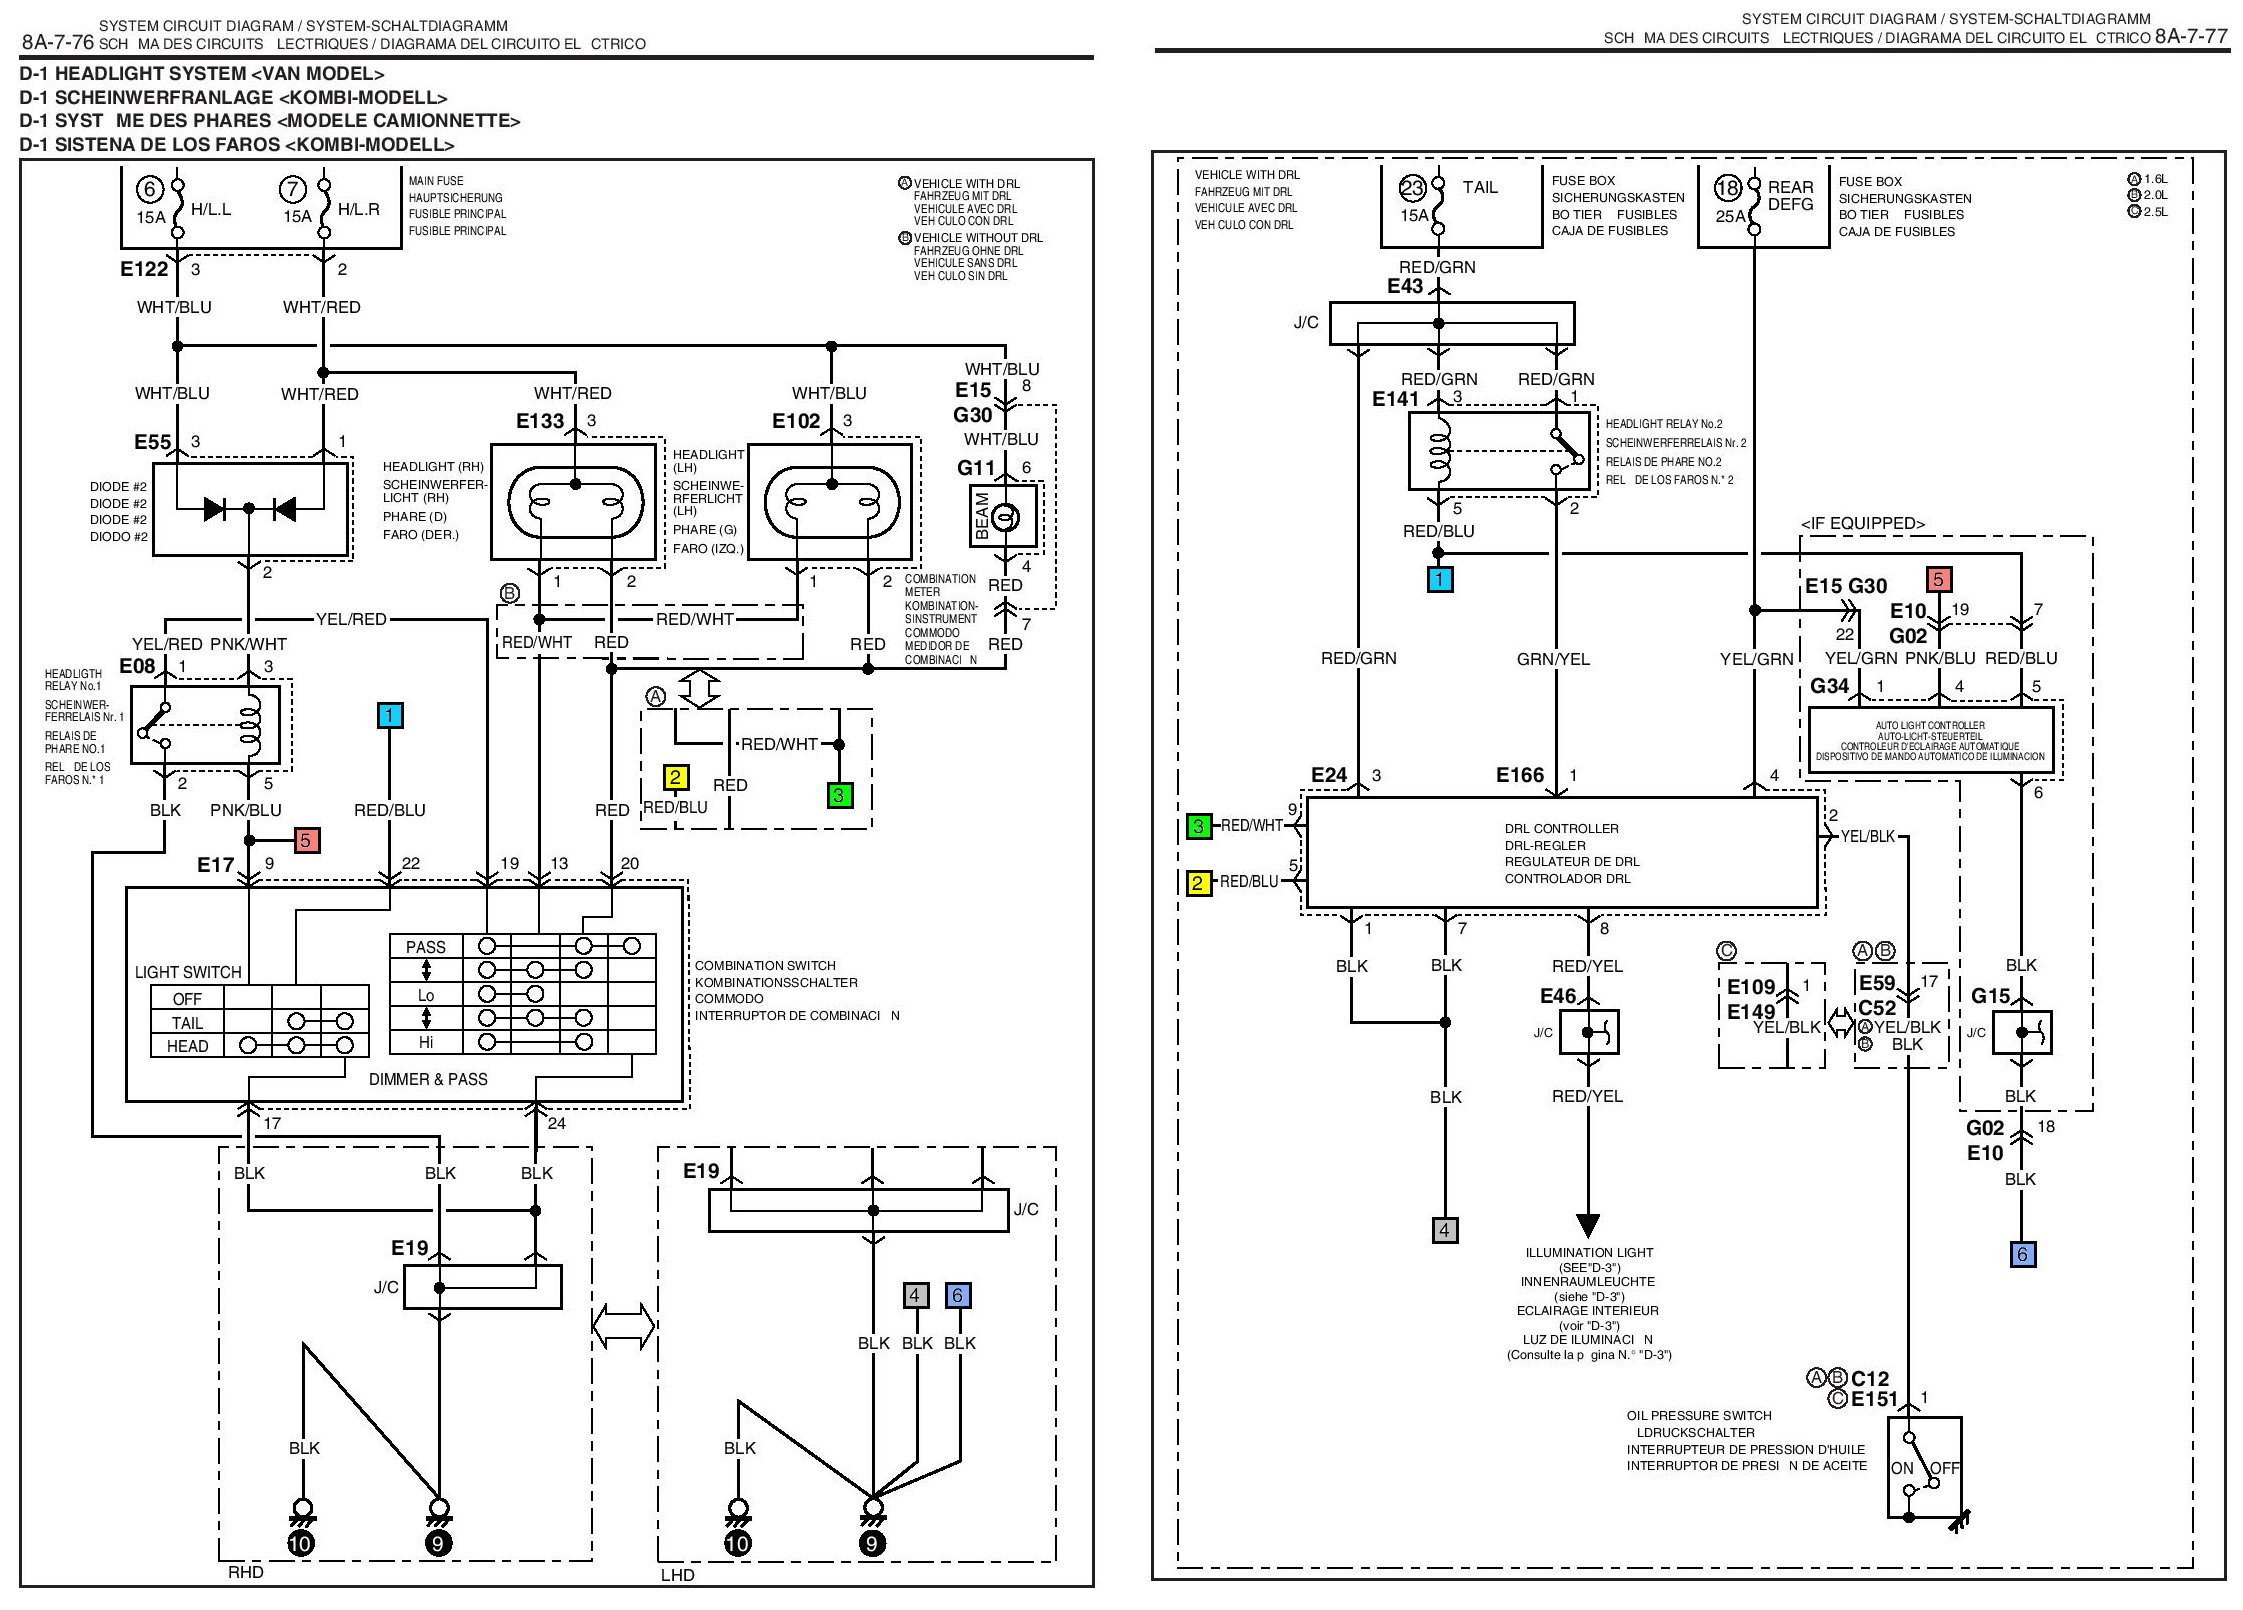 Suzuki Door Schematic Blog About Wiring Diagrams Suzuki XL7 Engine Diagram  Diagram Of A 2008 Suzuki Xl7. Source. fuse box for 2007 ...